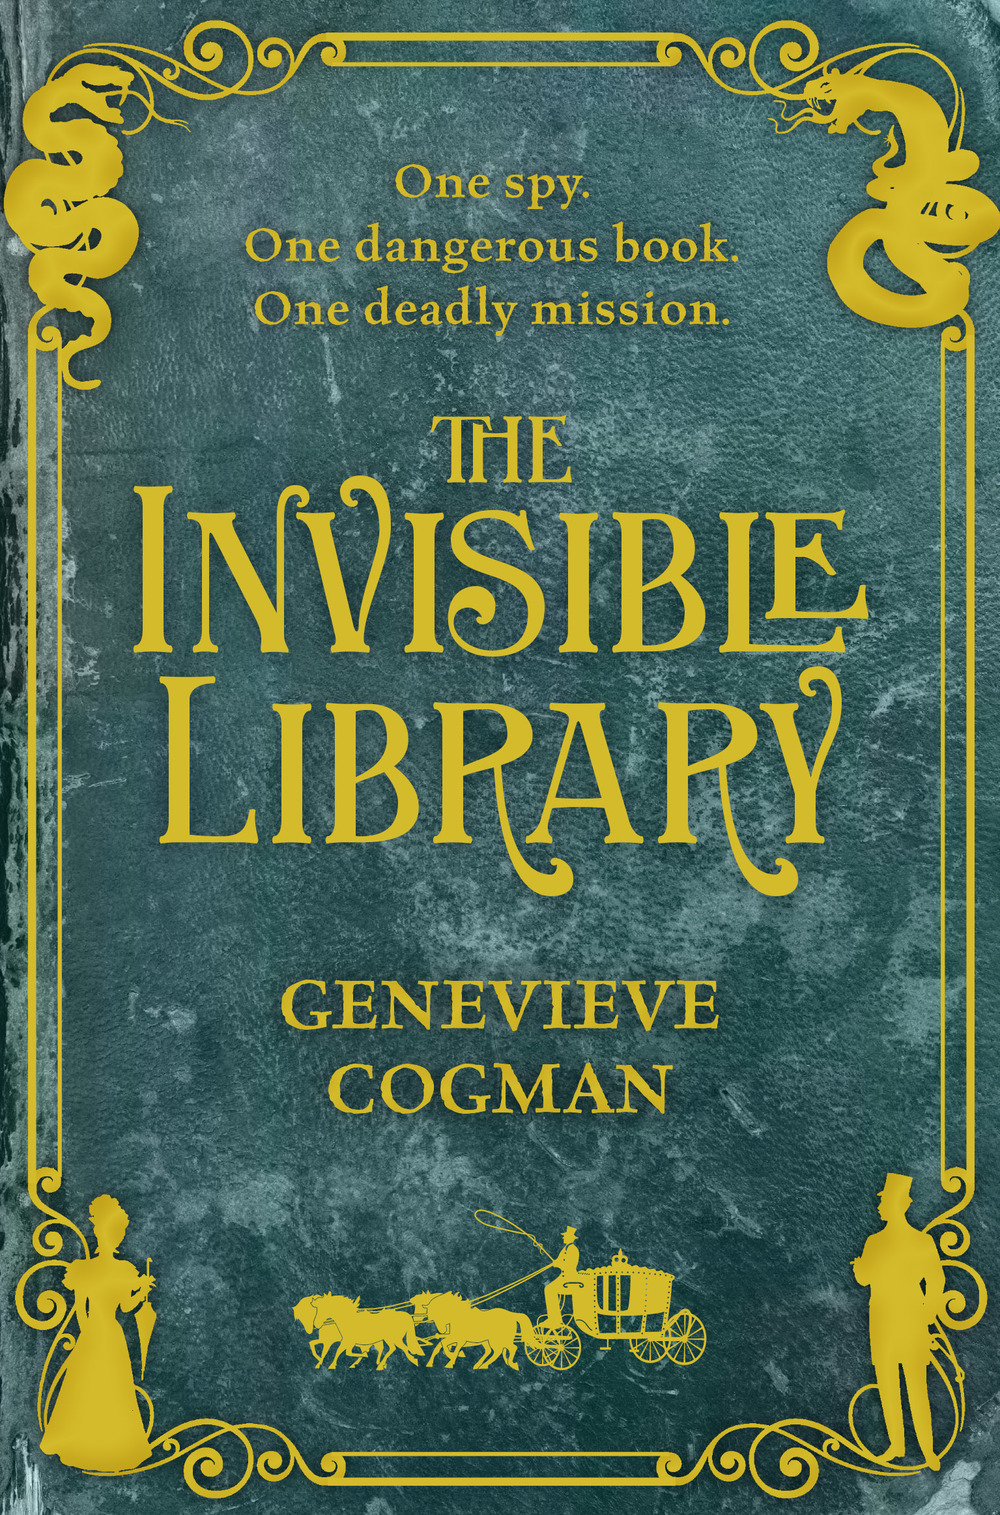 The Invisible Library - Genevieve Cogman.jpg